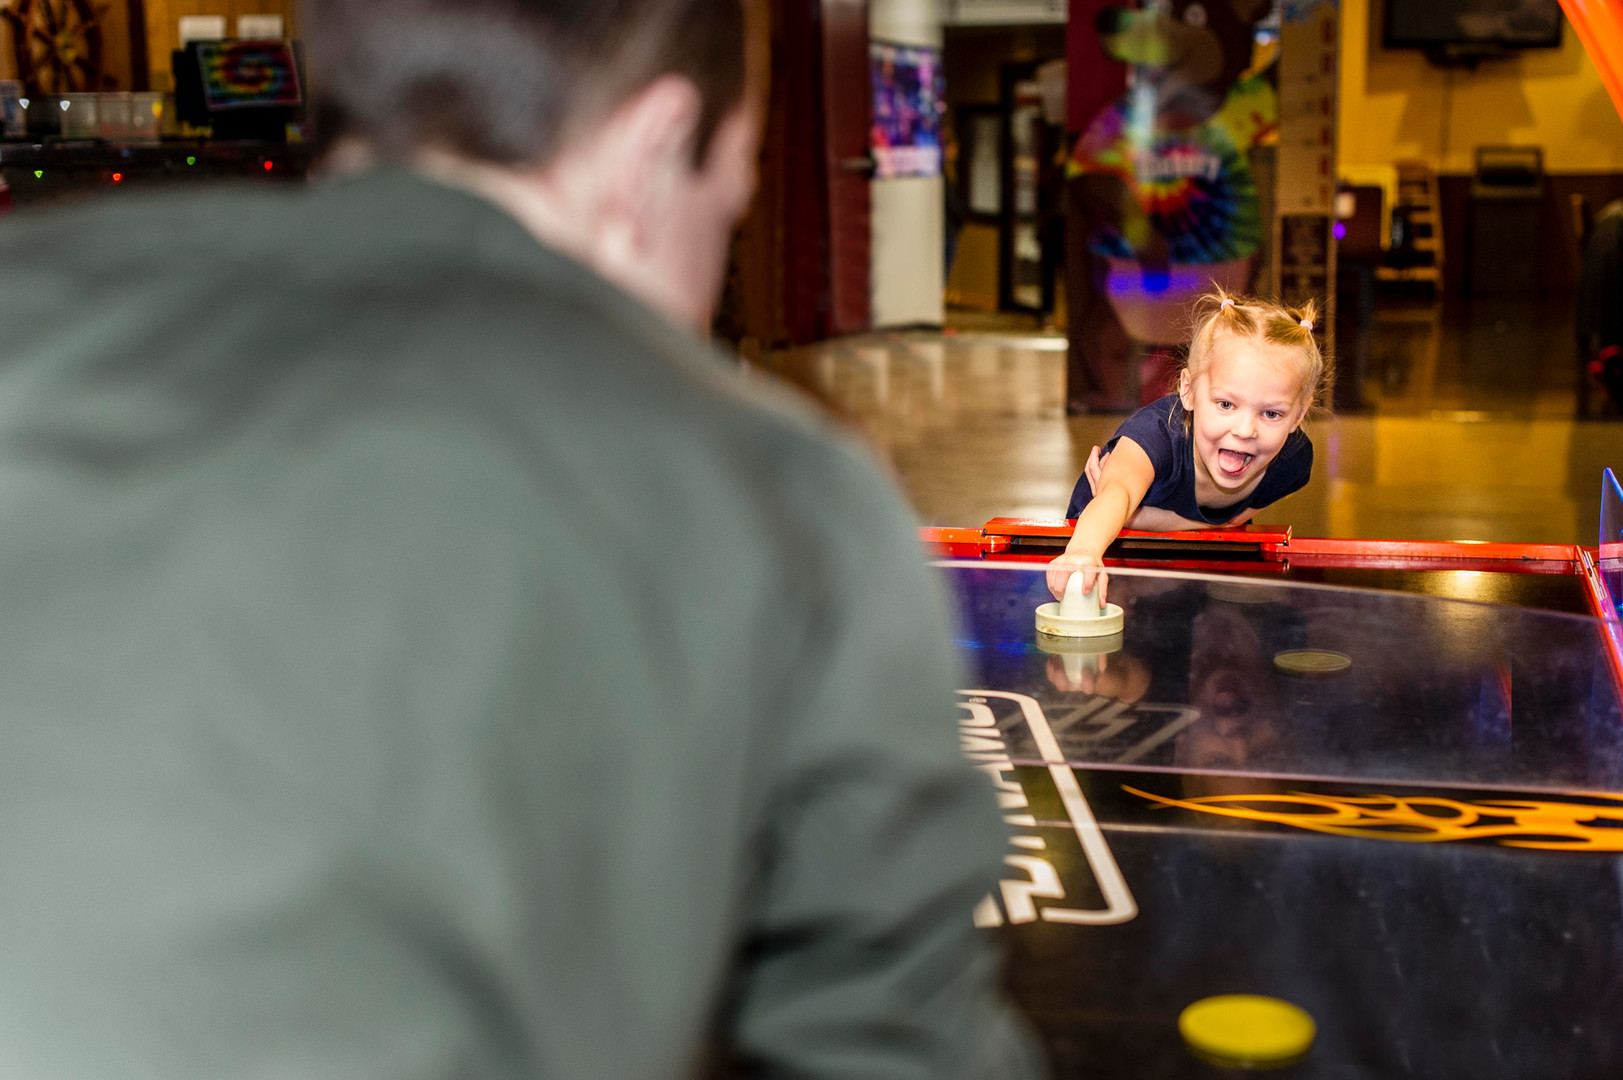 Little girl having fun playing an arcade game at Hickory Falls